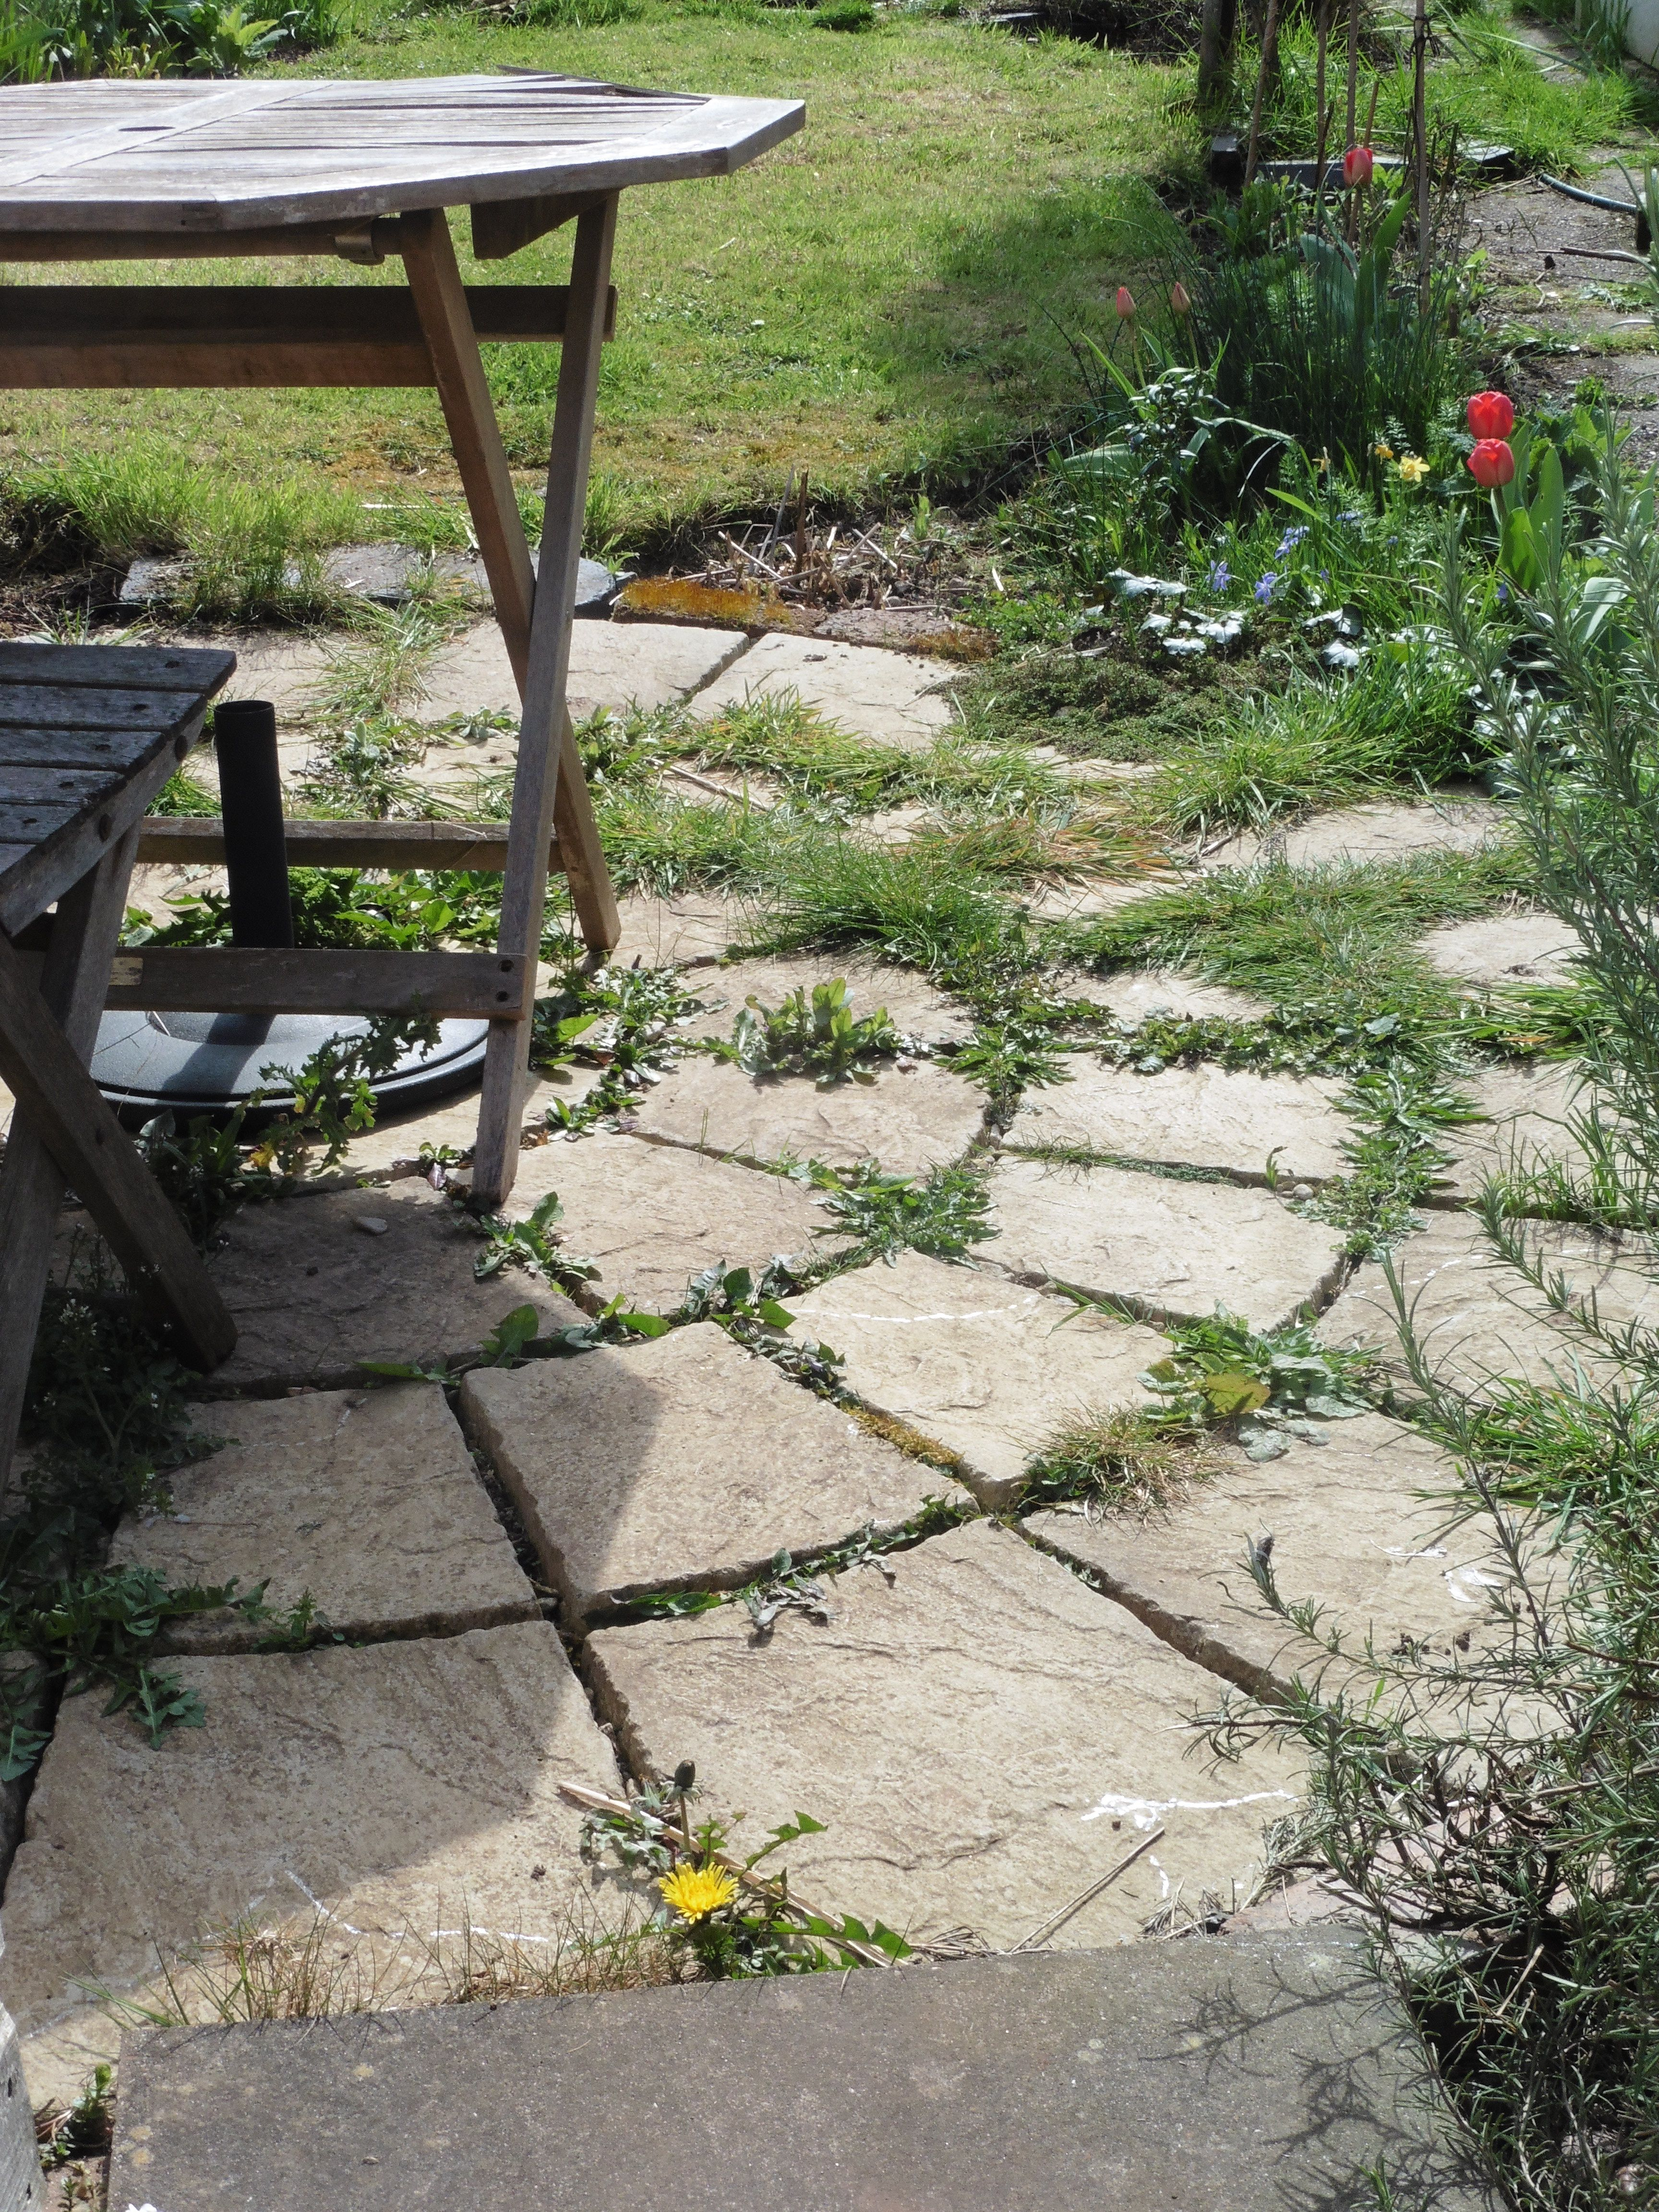 patio, with weeds